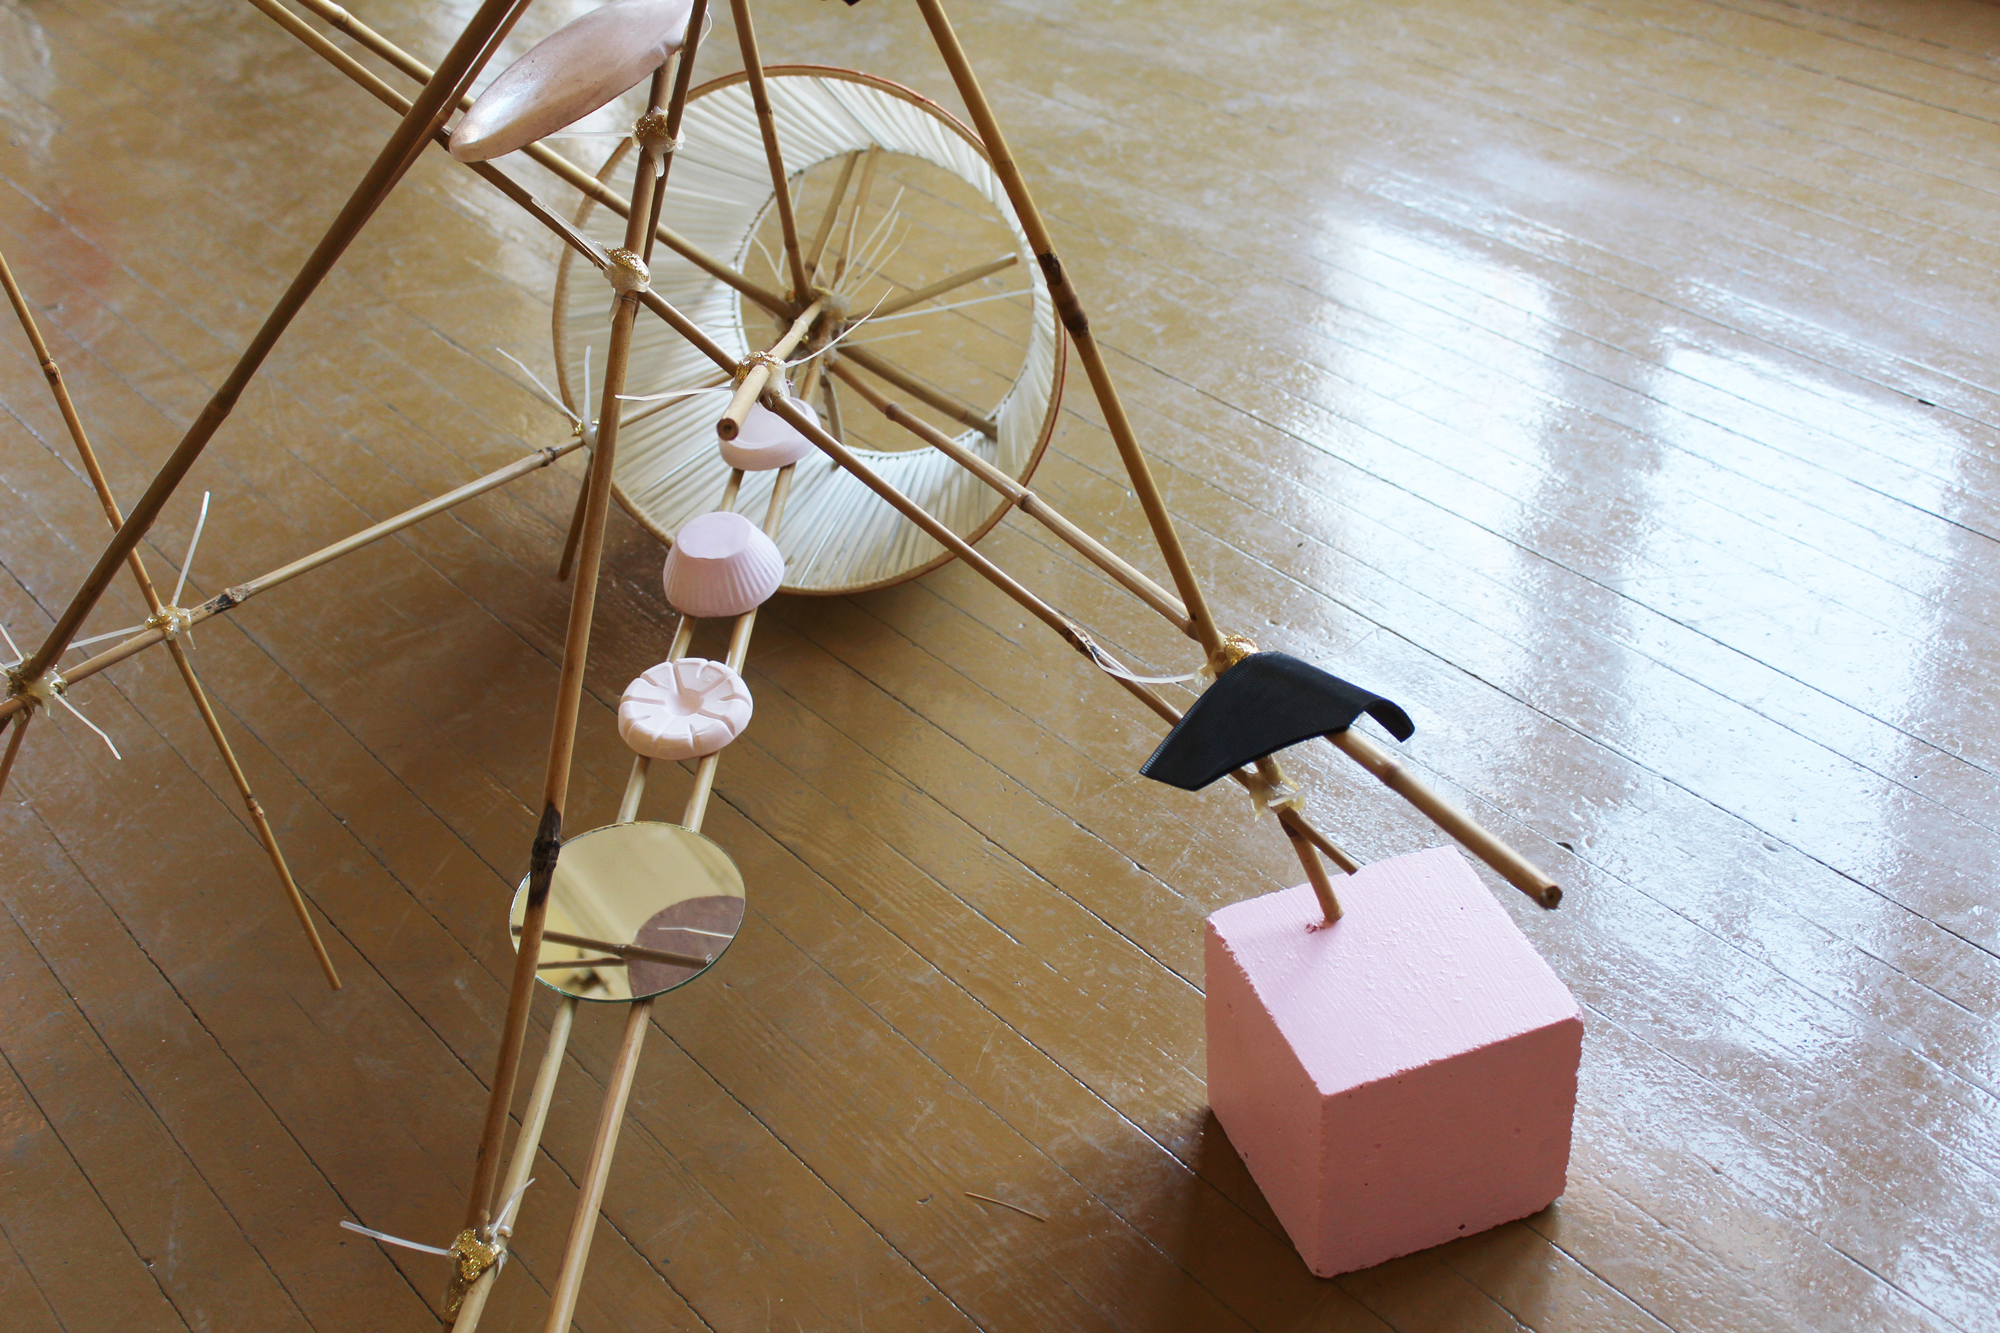 Nana Sachini,  Collection of Unfinished Houses , 2013, Bamboo sticks, lampshade, silicone, glitter, cement, plaster, paint, rubber, mirror, 107 x 155 x 125 cm, Courtesy the artist and a.antonopoulou.art gallery